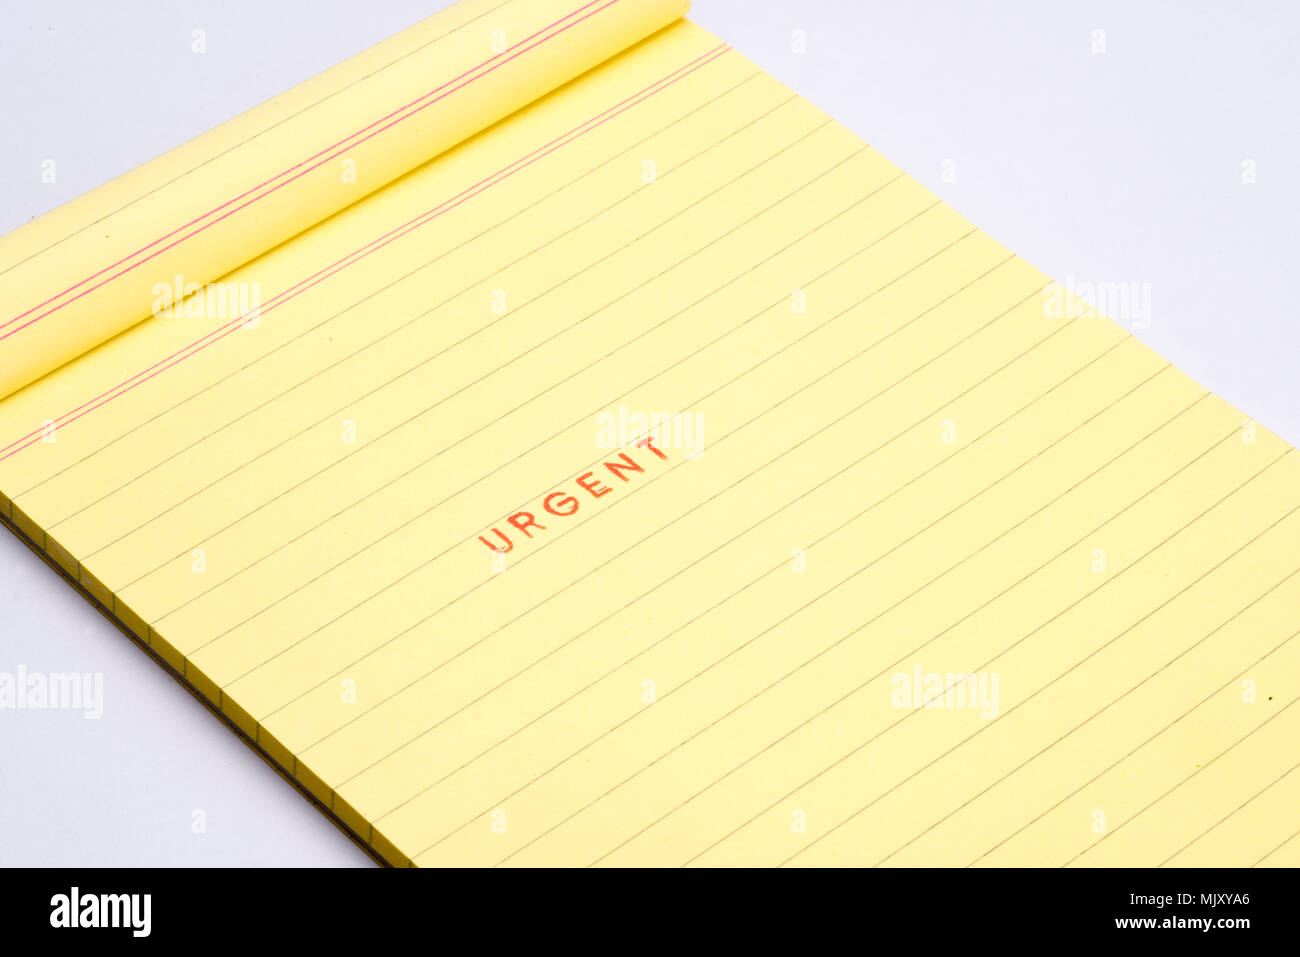 'URGENT' rubber stamp on yellow note pad. - Stock Image